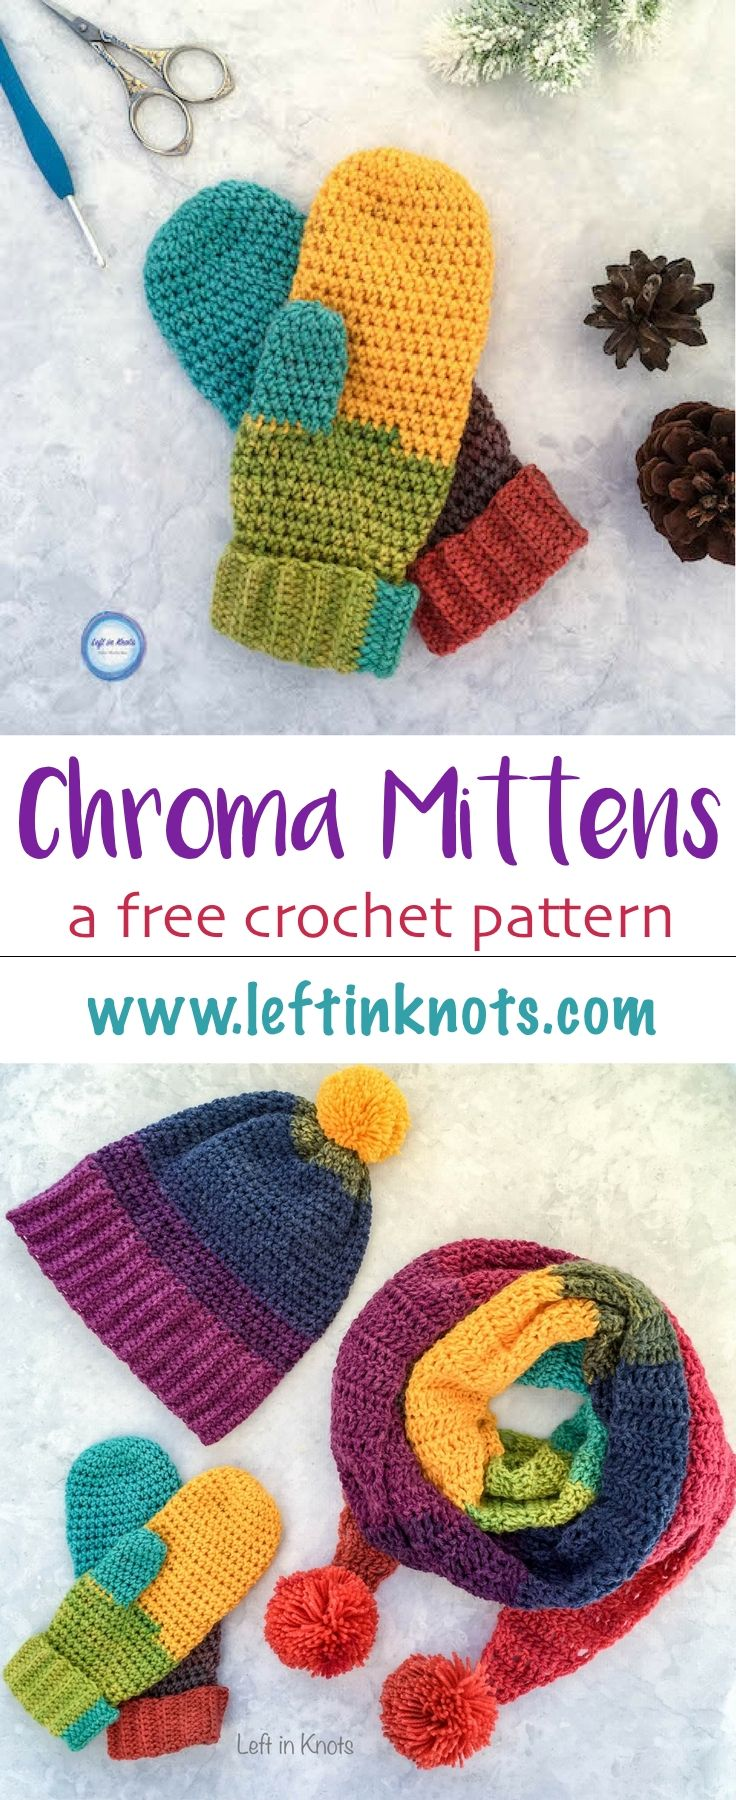 These mittens are part of a free crochet pattern collection called the Chroma Collection. Use Lion Brand Mandala yarn to make the Chroma Mittens! Then make the Chroma Slouch Hat and Chroma Scarf to match. #freecrochetpattern #crochetmittens #lionbrand